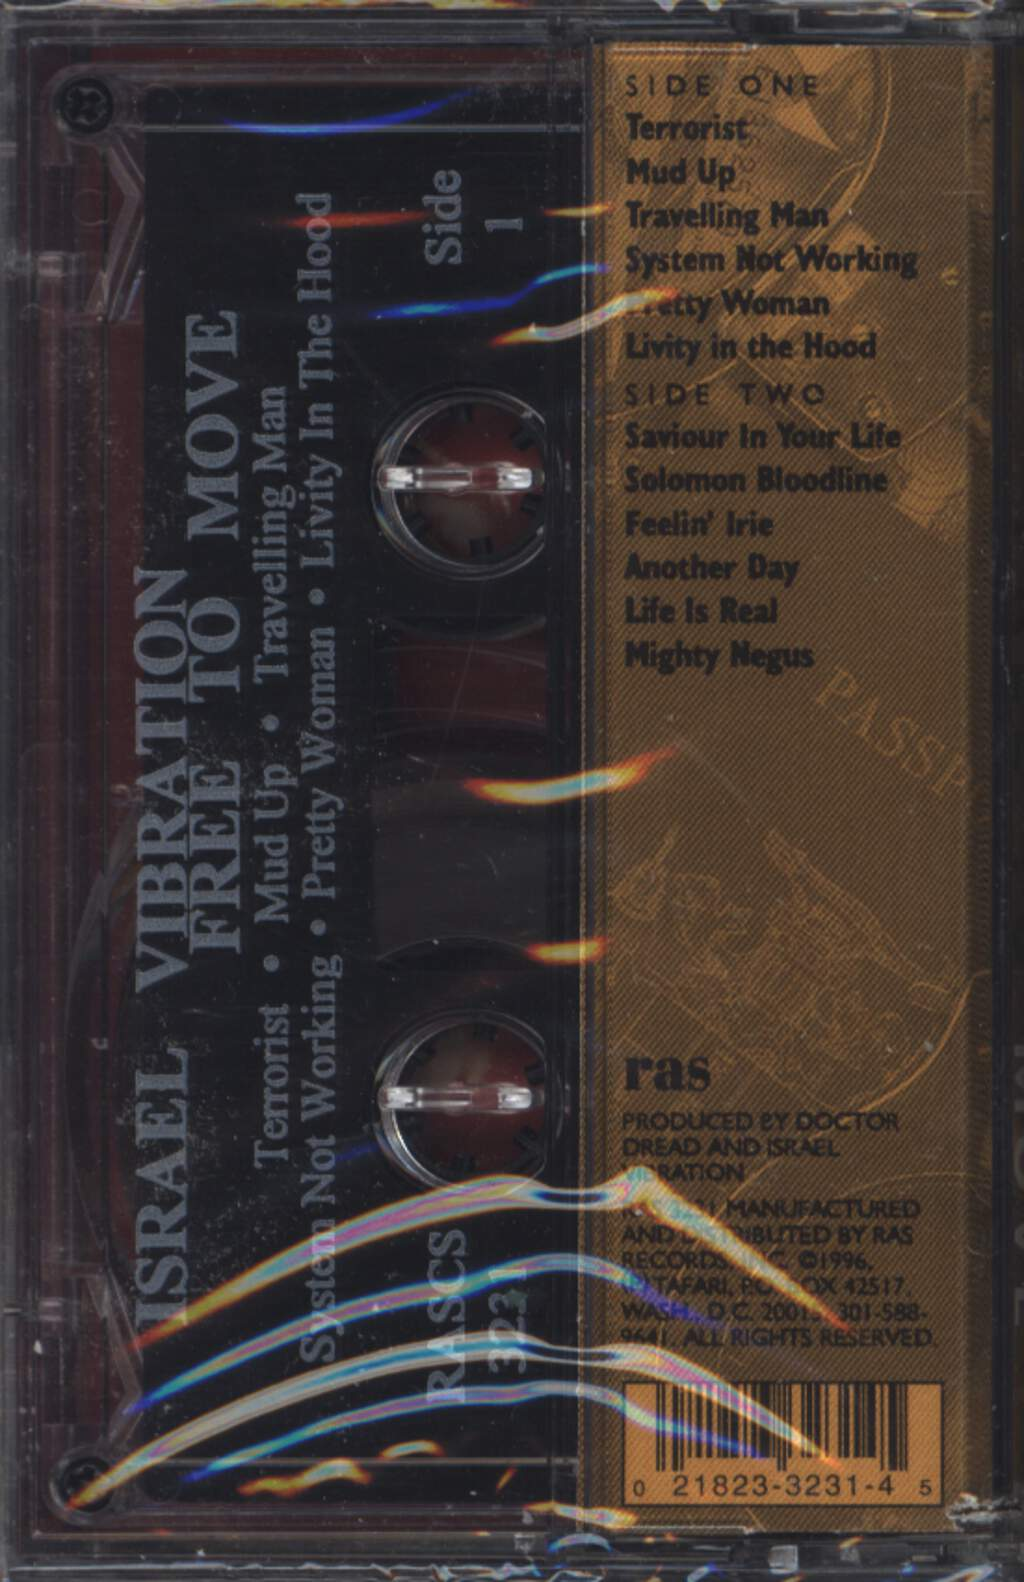 Israel Vibration: Free To Move, Compact Cassette